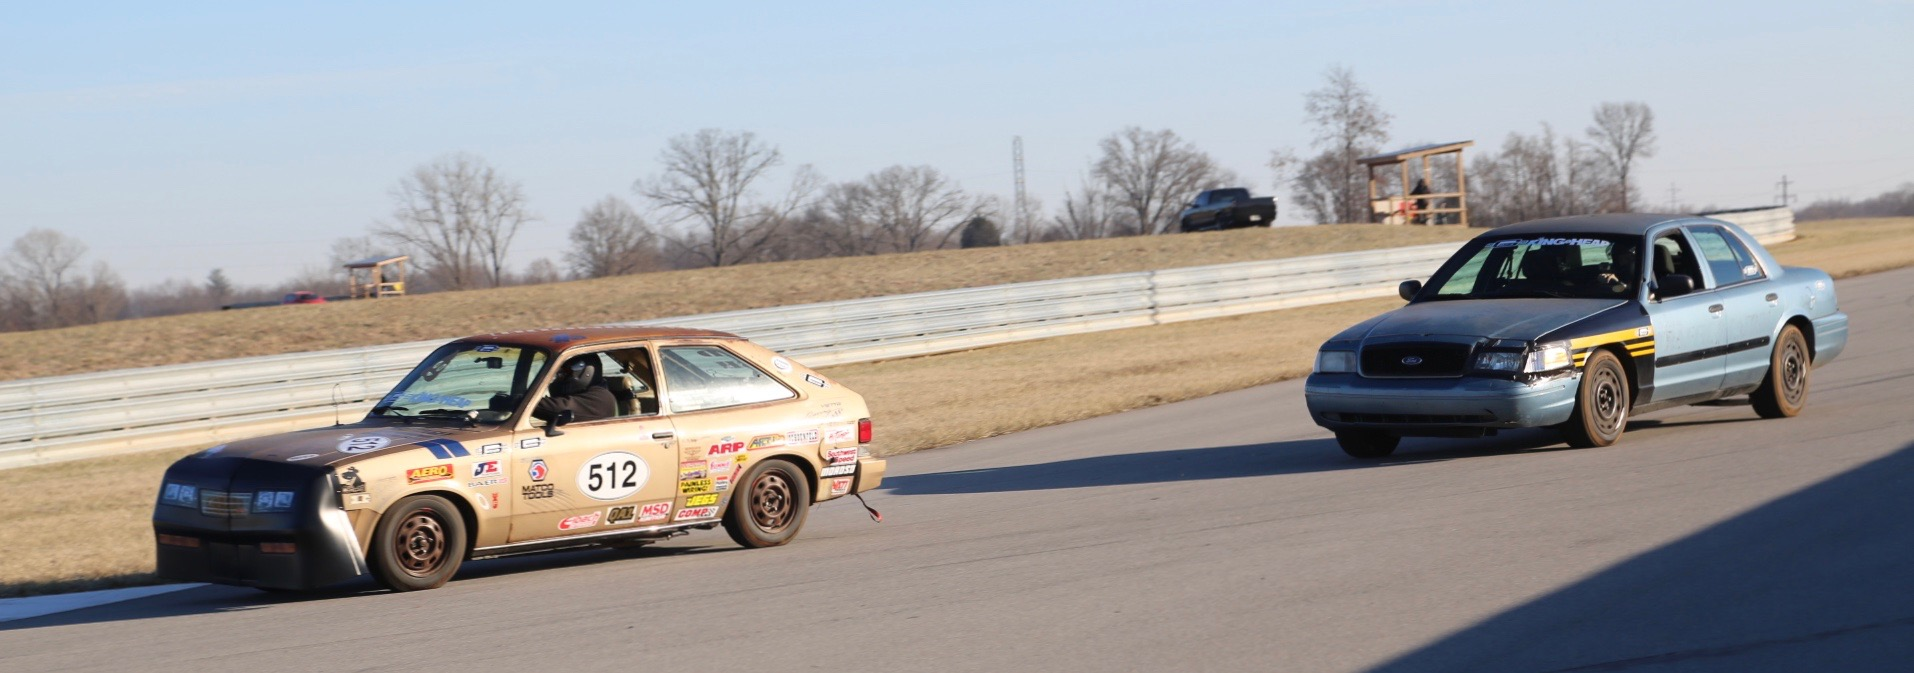 Low-cost ways are available to go vintage racing   ClassicCars.com